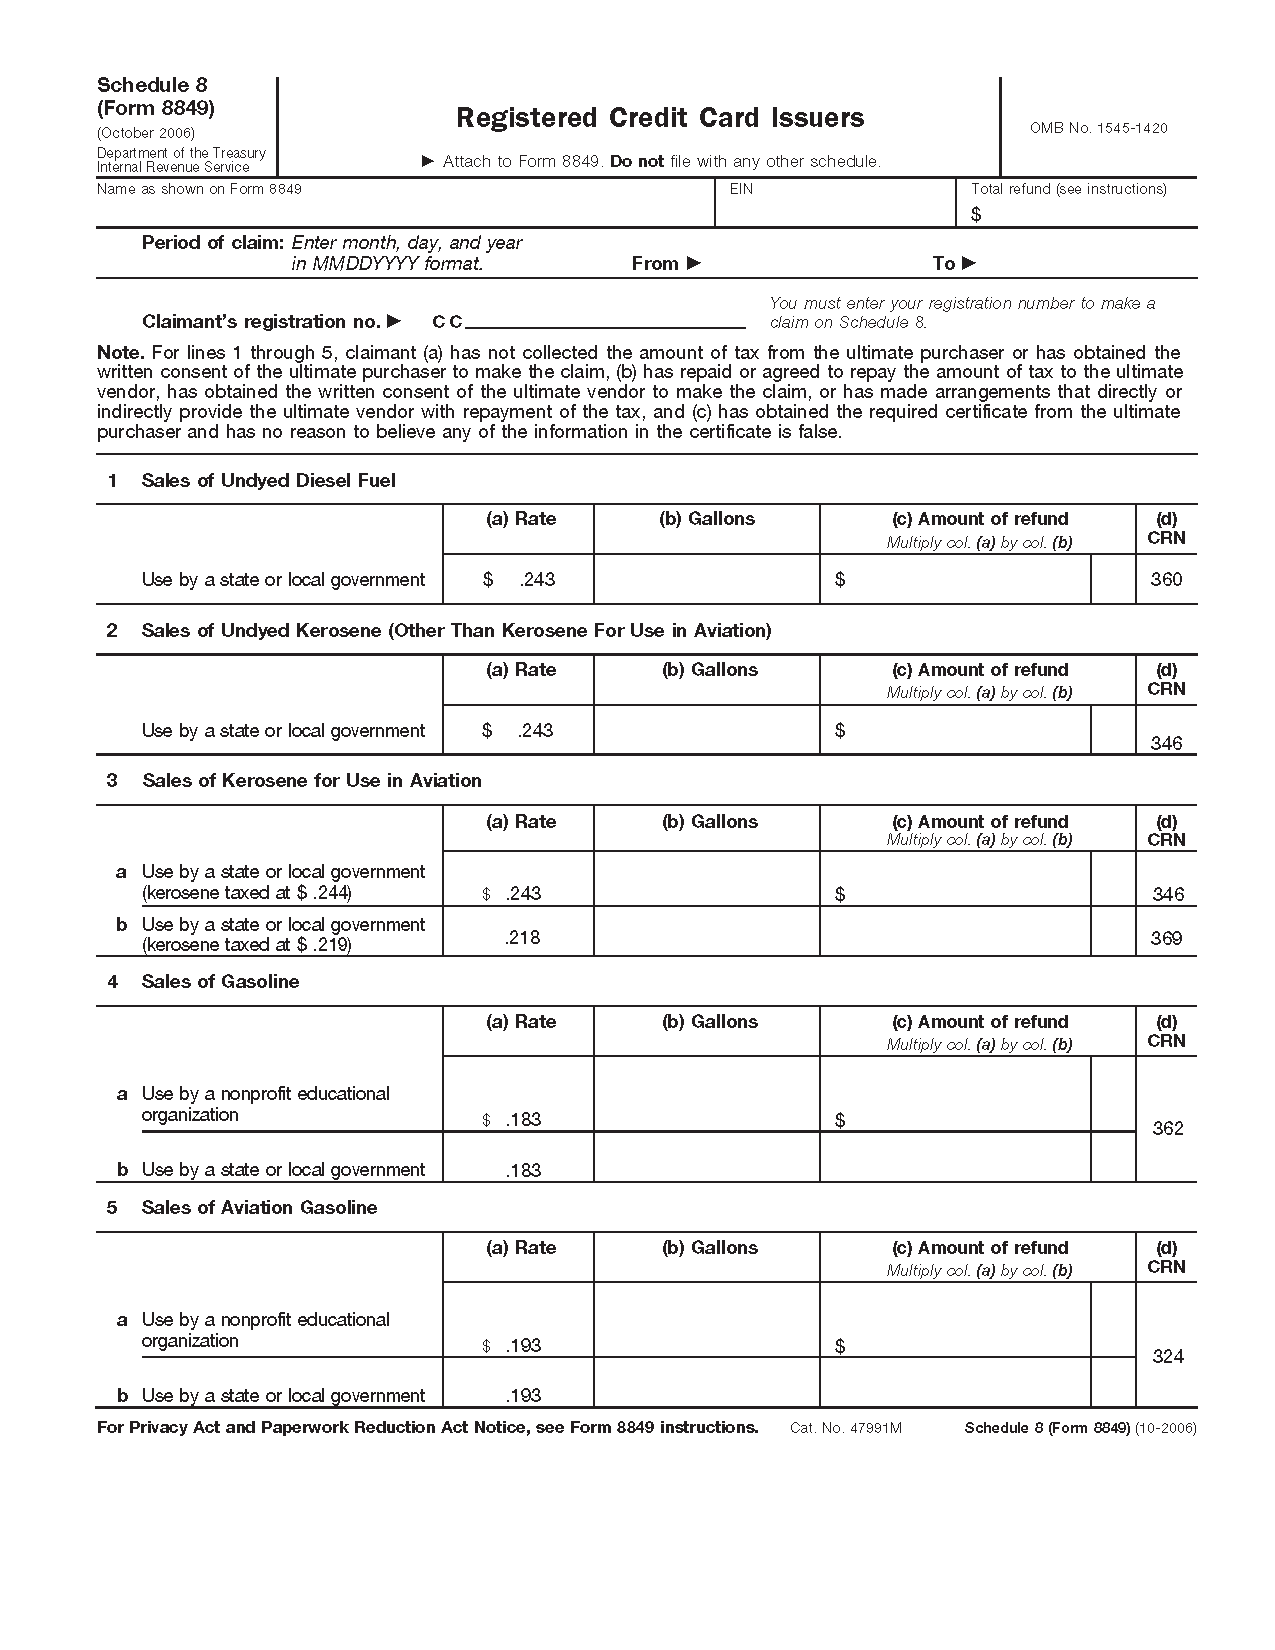 Form Schedule 8 Registered Credit Card Issuers